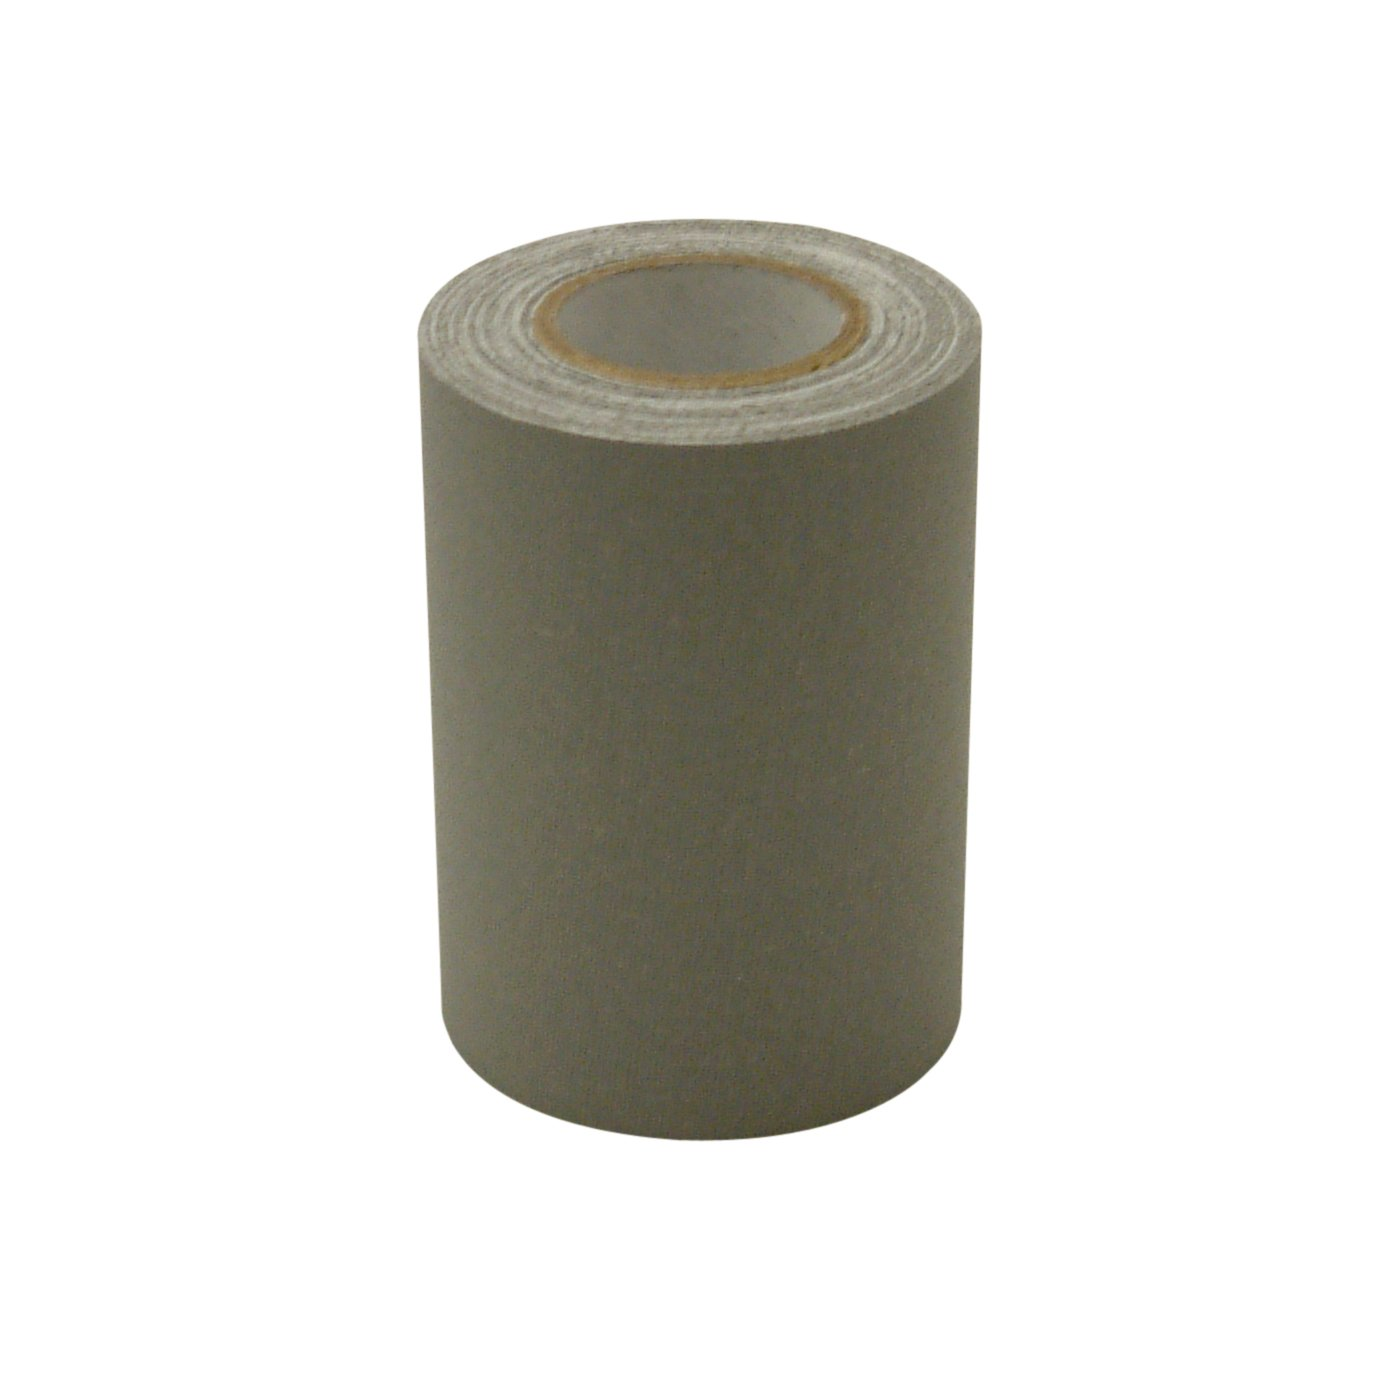 J.V. Converting REPAIR-1/GRY35 JVCC REPAIR-1 Leather & Vinyl Repair Tape: 3'' x 15 ft.